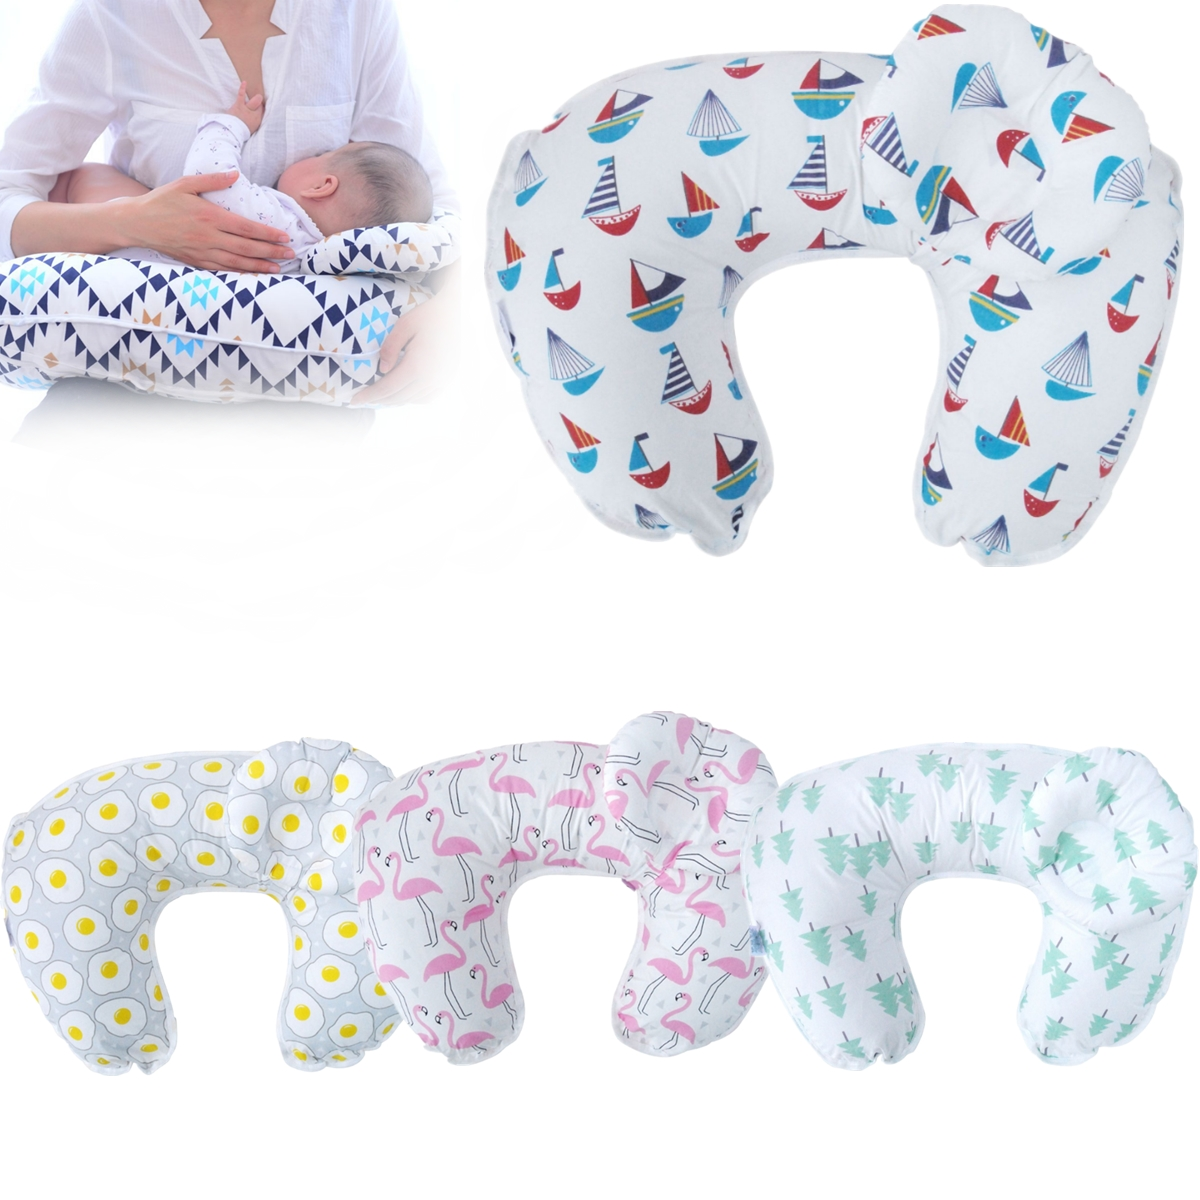 neck headrest straps baby pillow pad head protection with toddler itm d